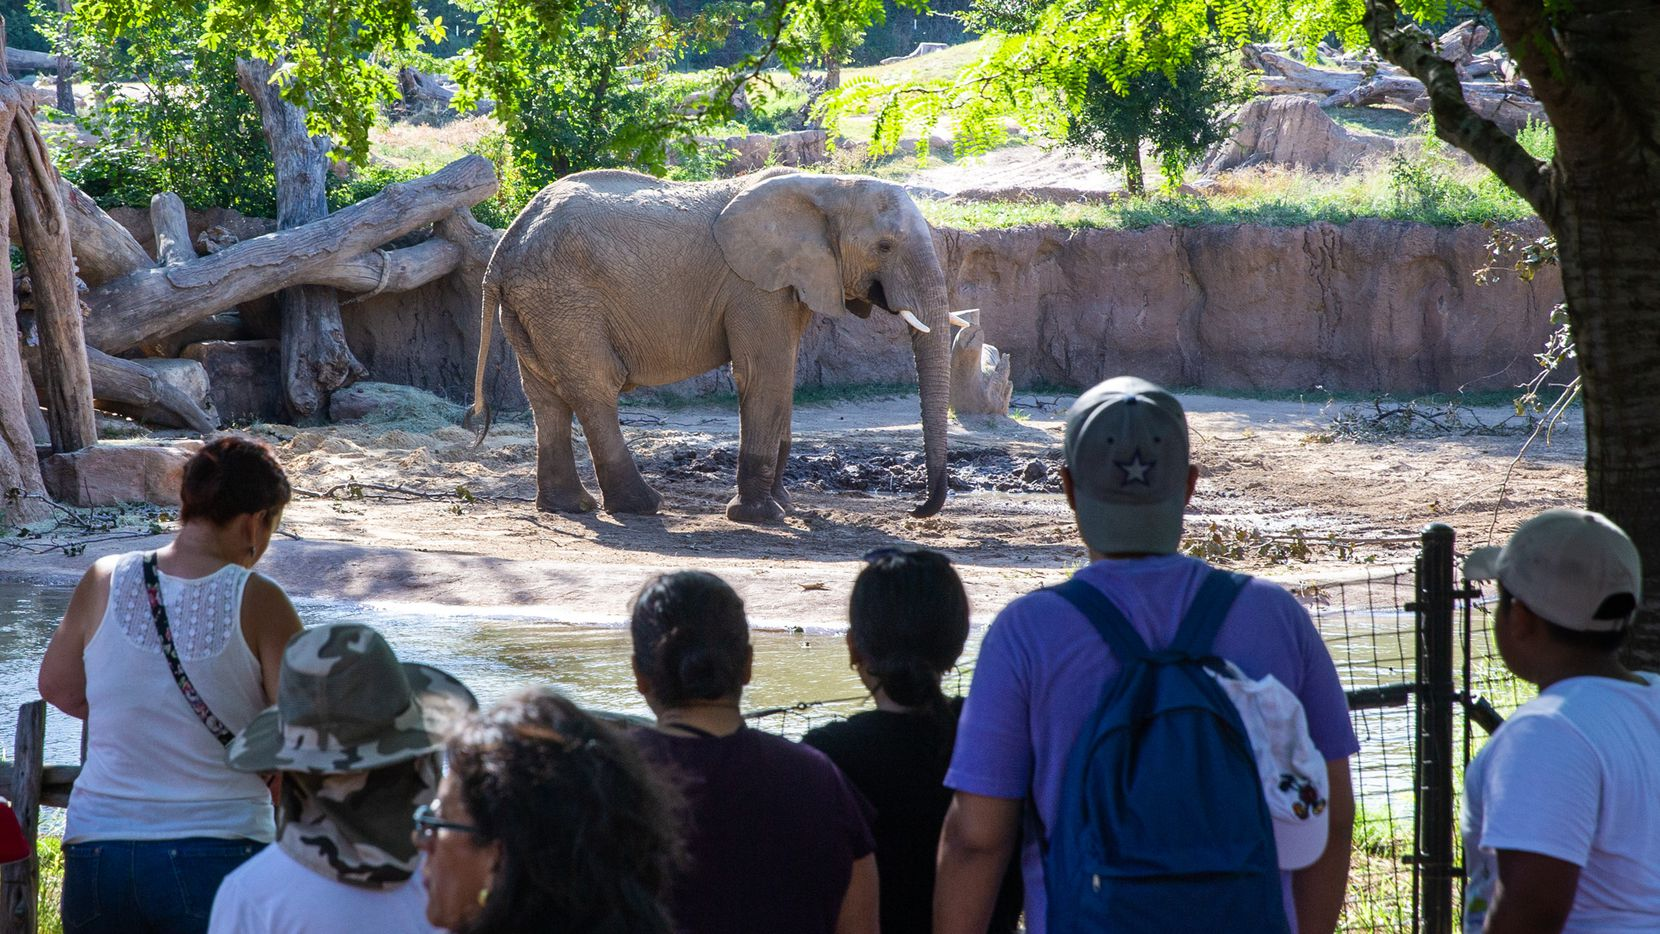 Families with children watched an elephant at the Dallas Zoo on July 18, 2019.